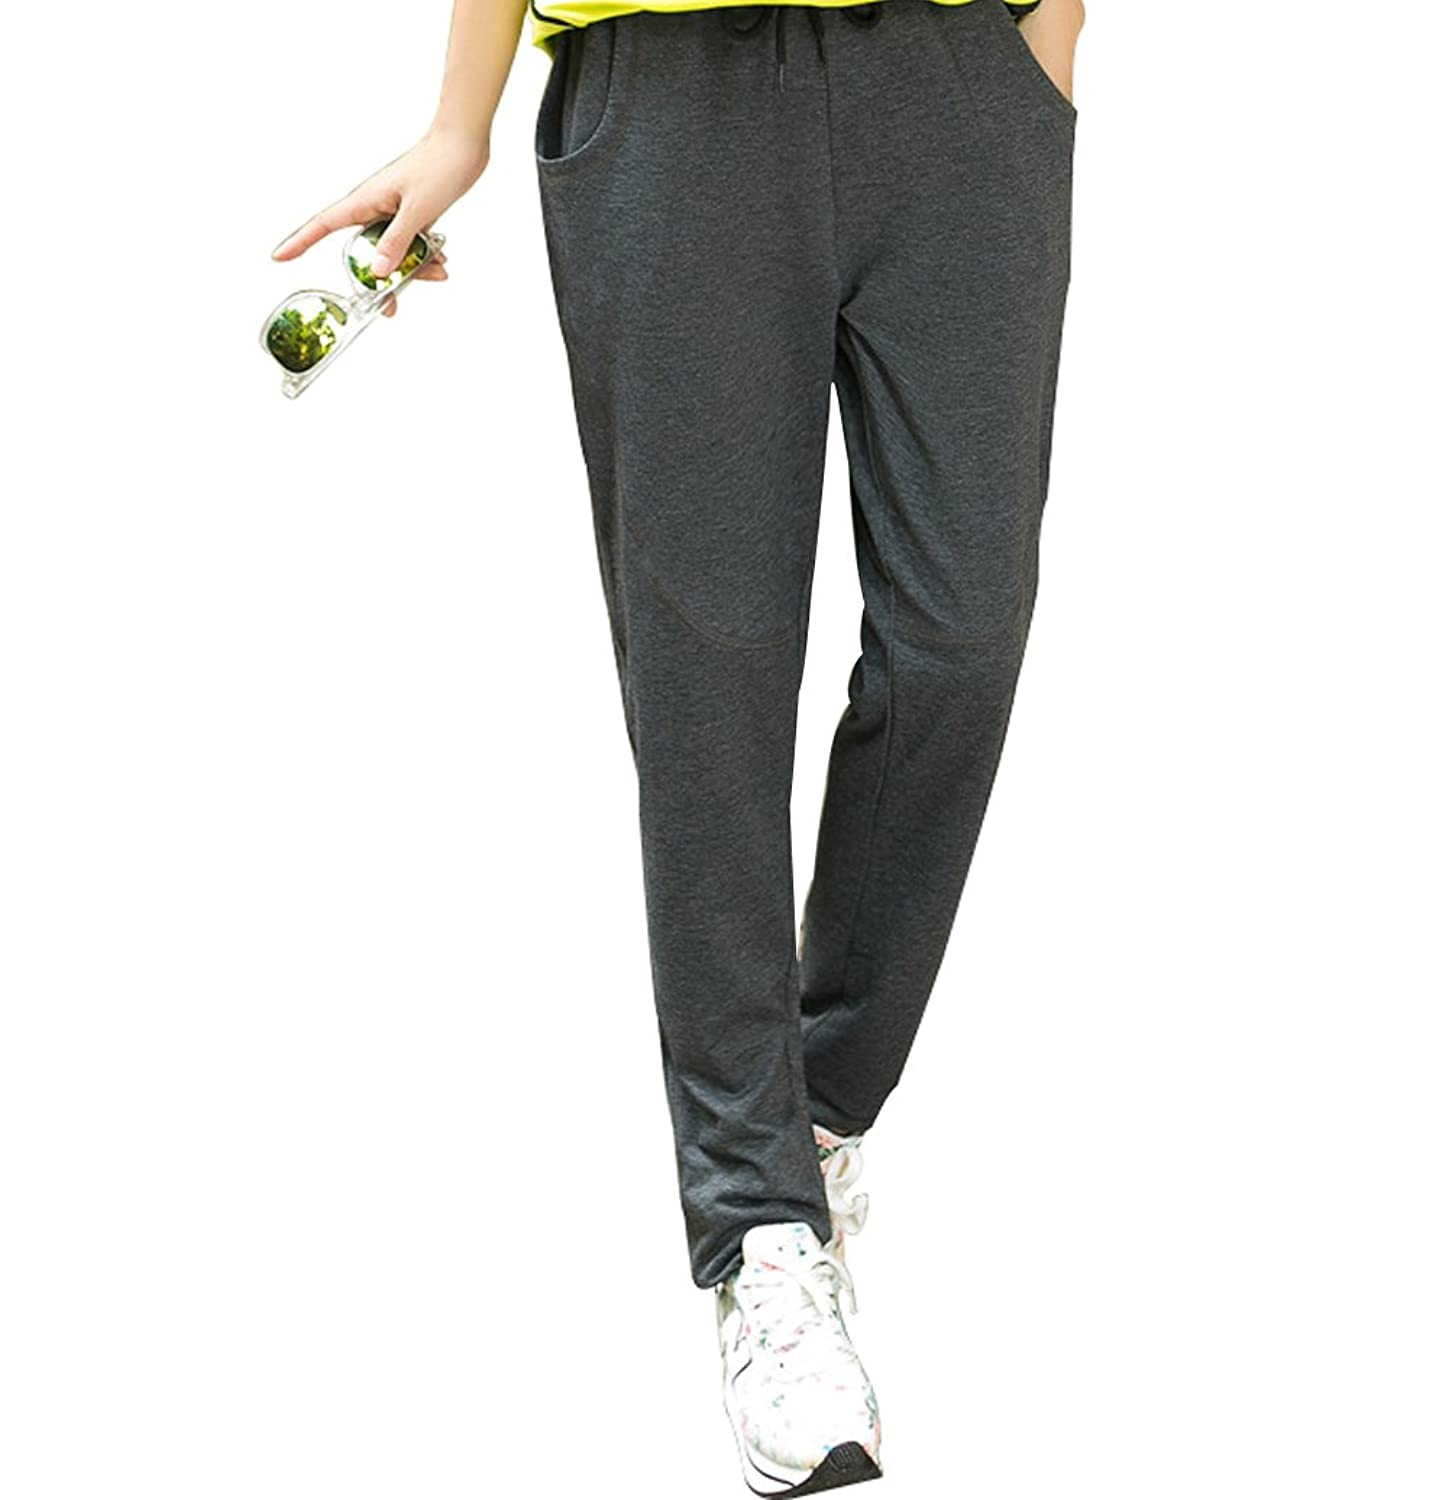 Wind Girl Women 'S Jersey Pant Slacks and a Sports Pants